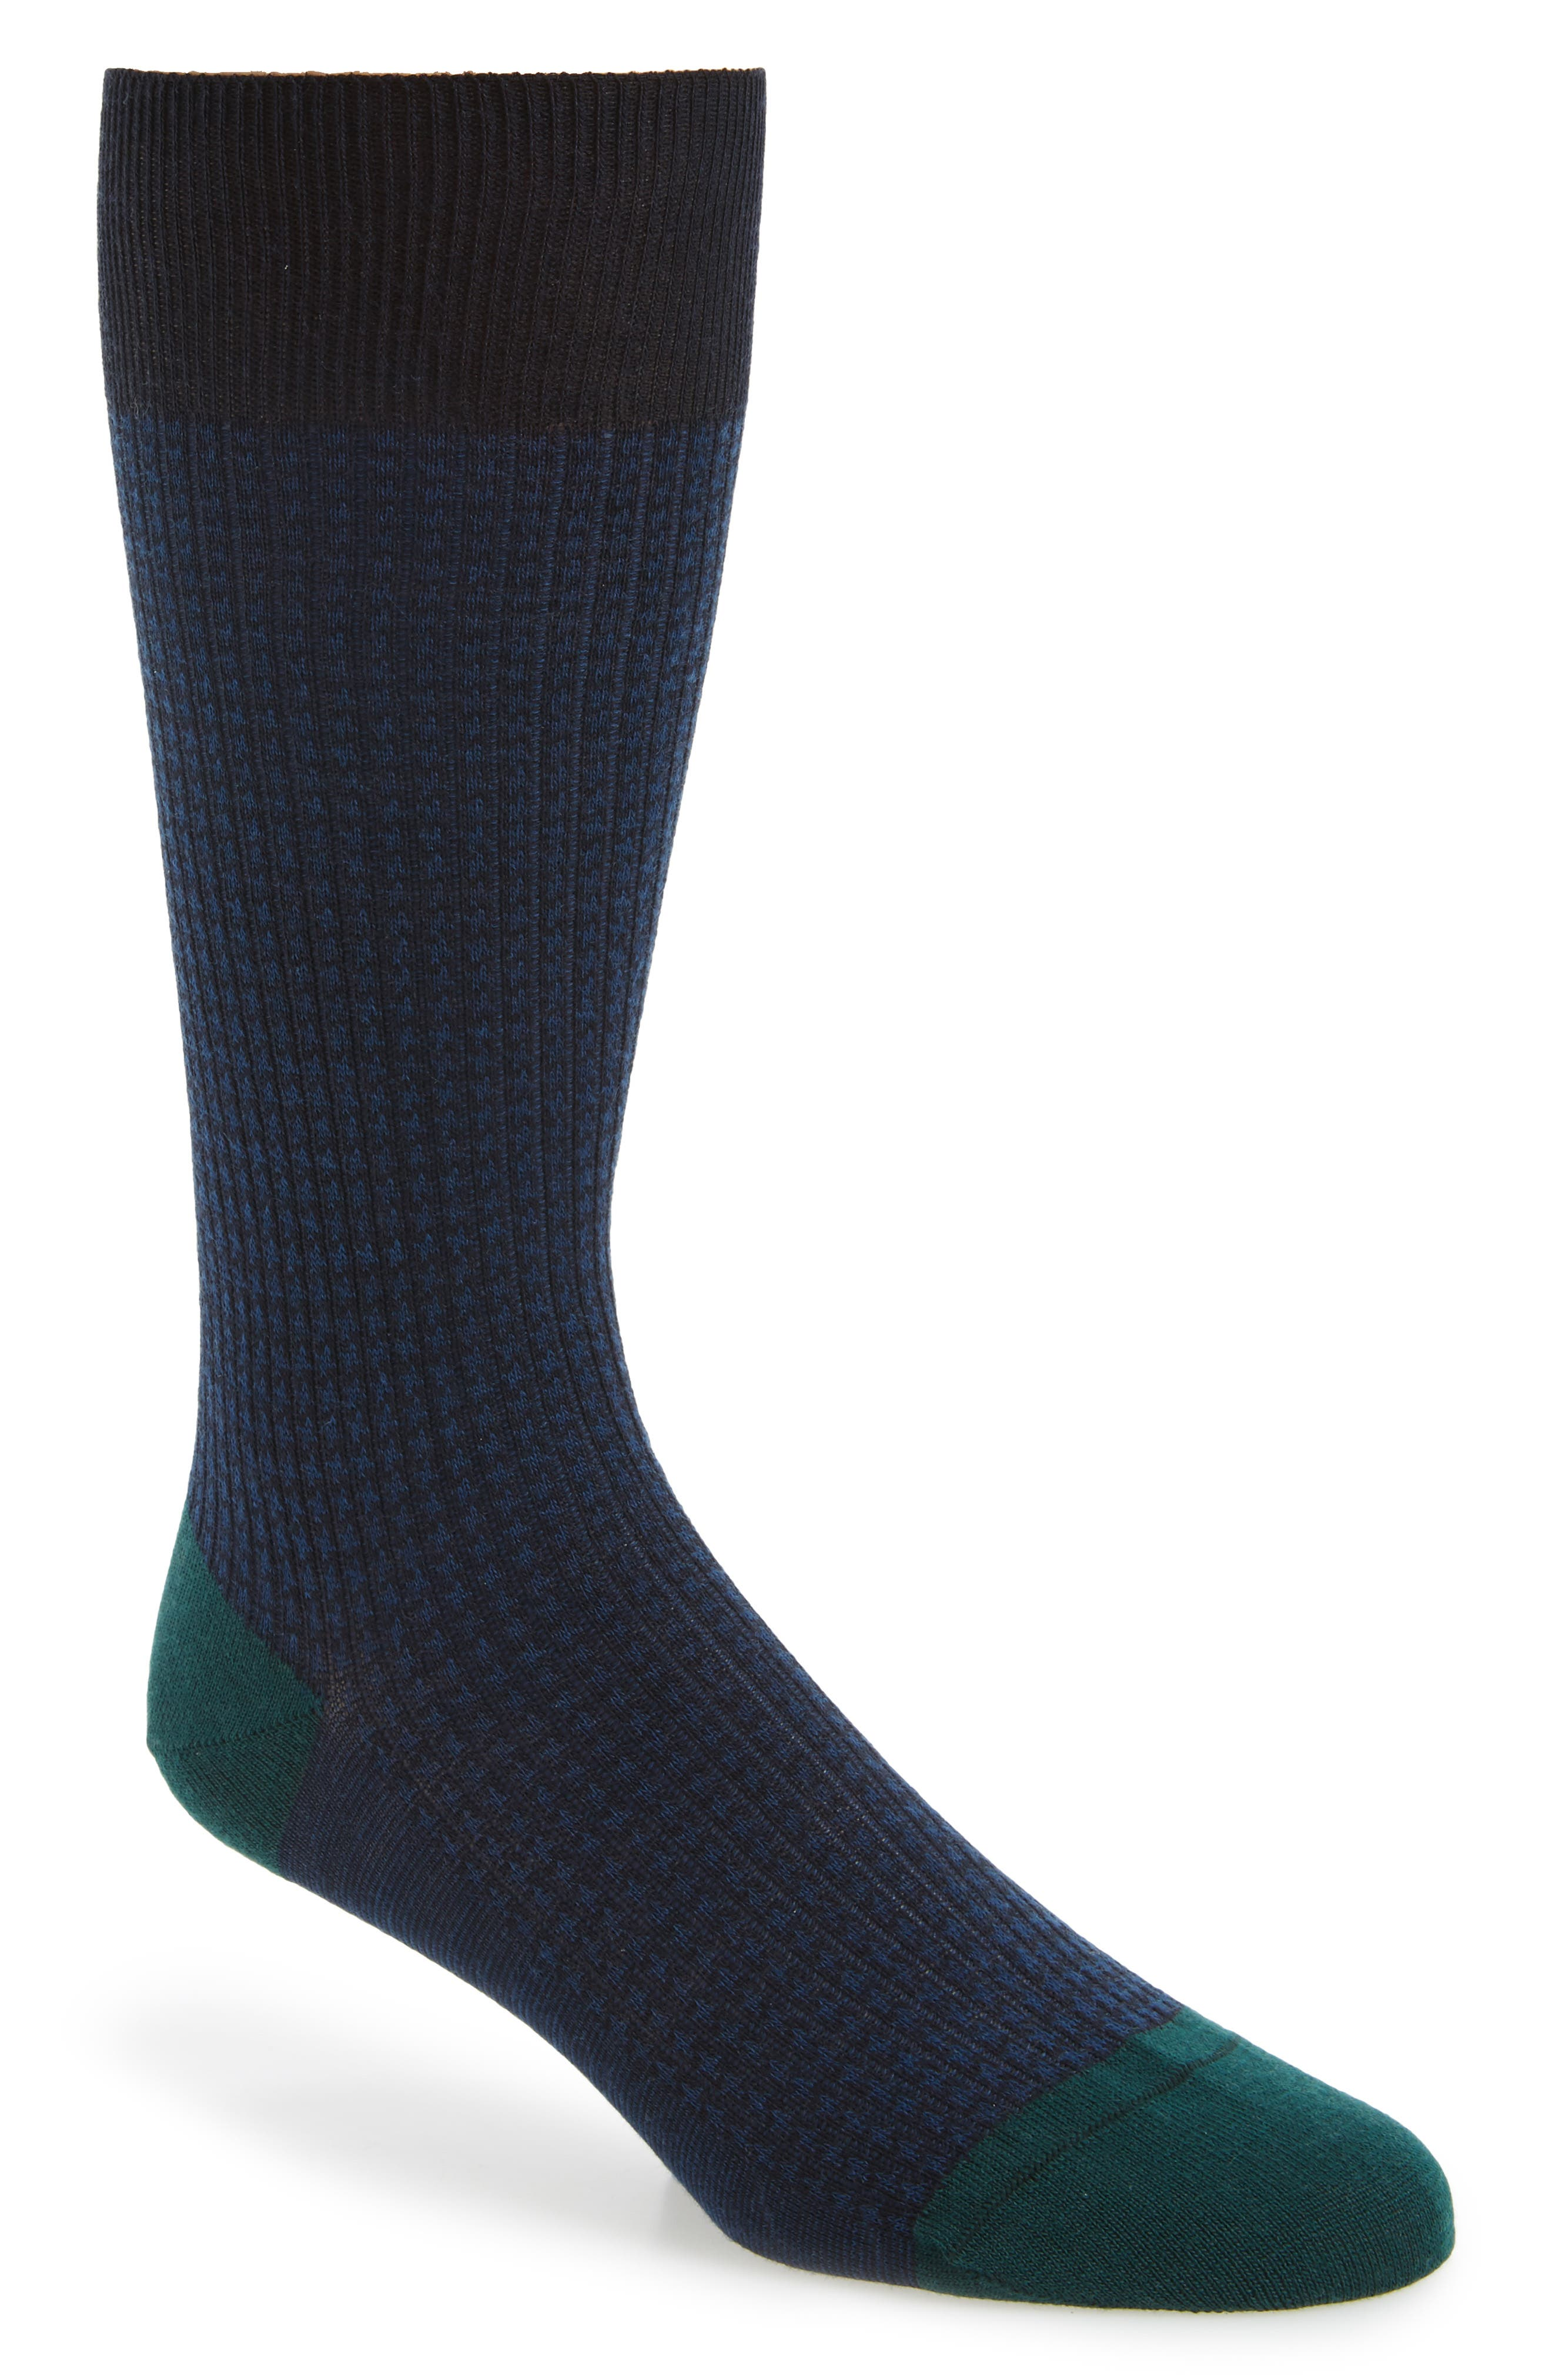 Houndstooth Wool Blend Socks,                             Main thumbnail 1, color,                             Navy